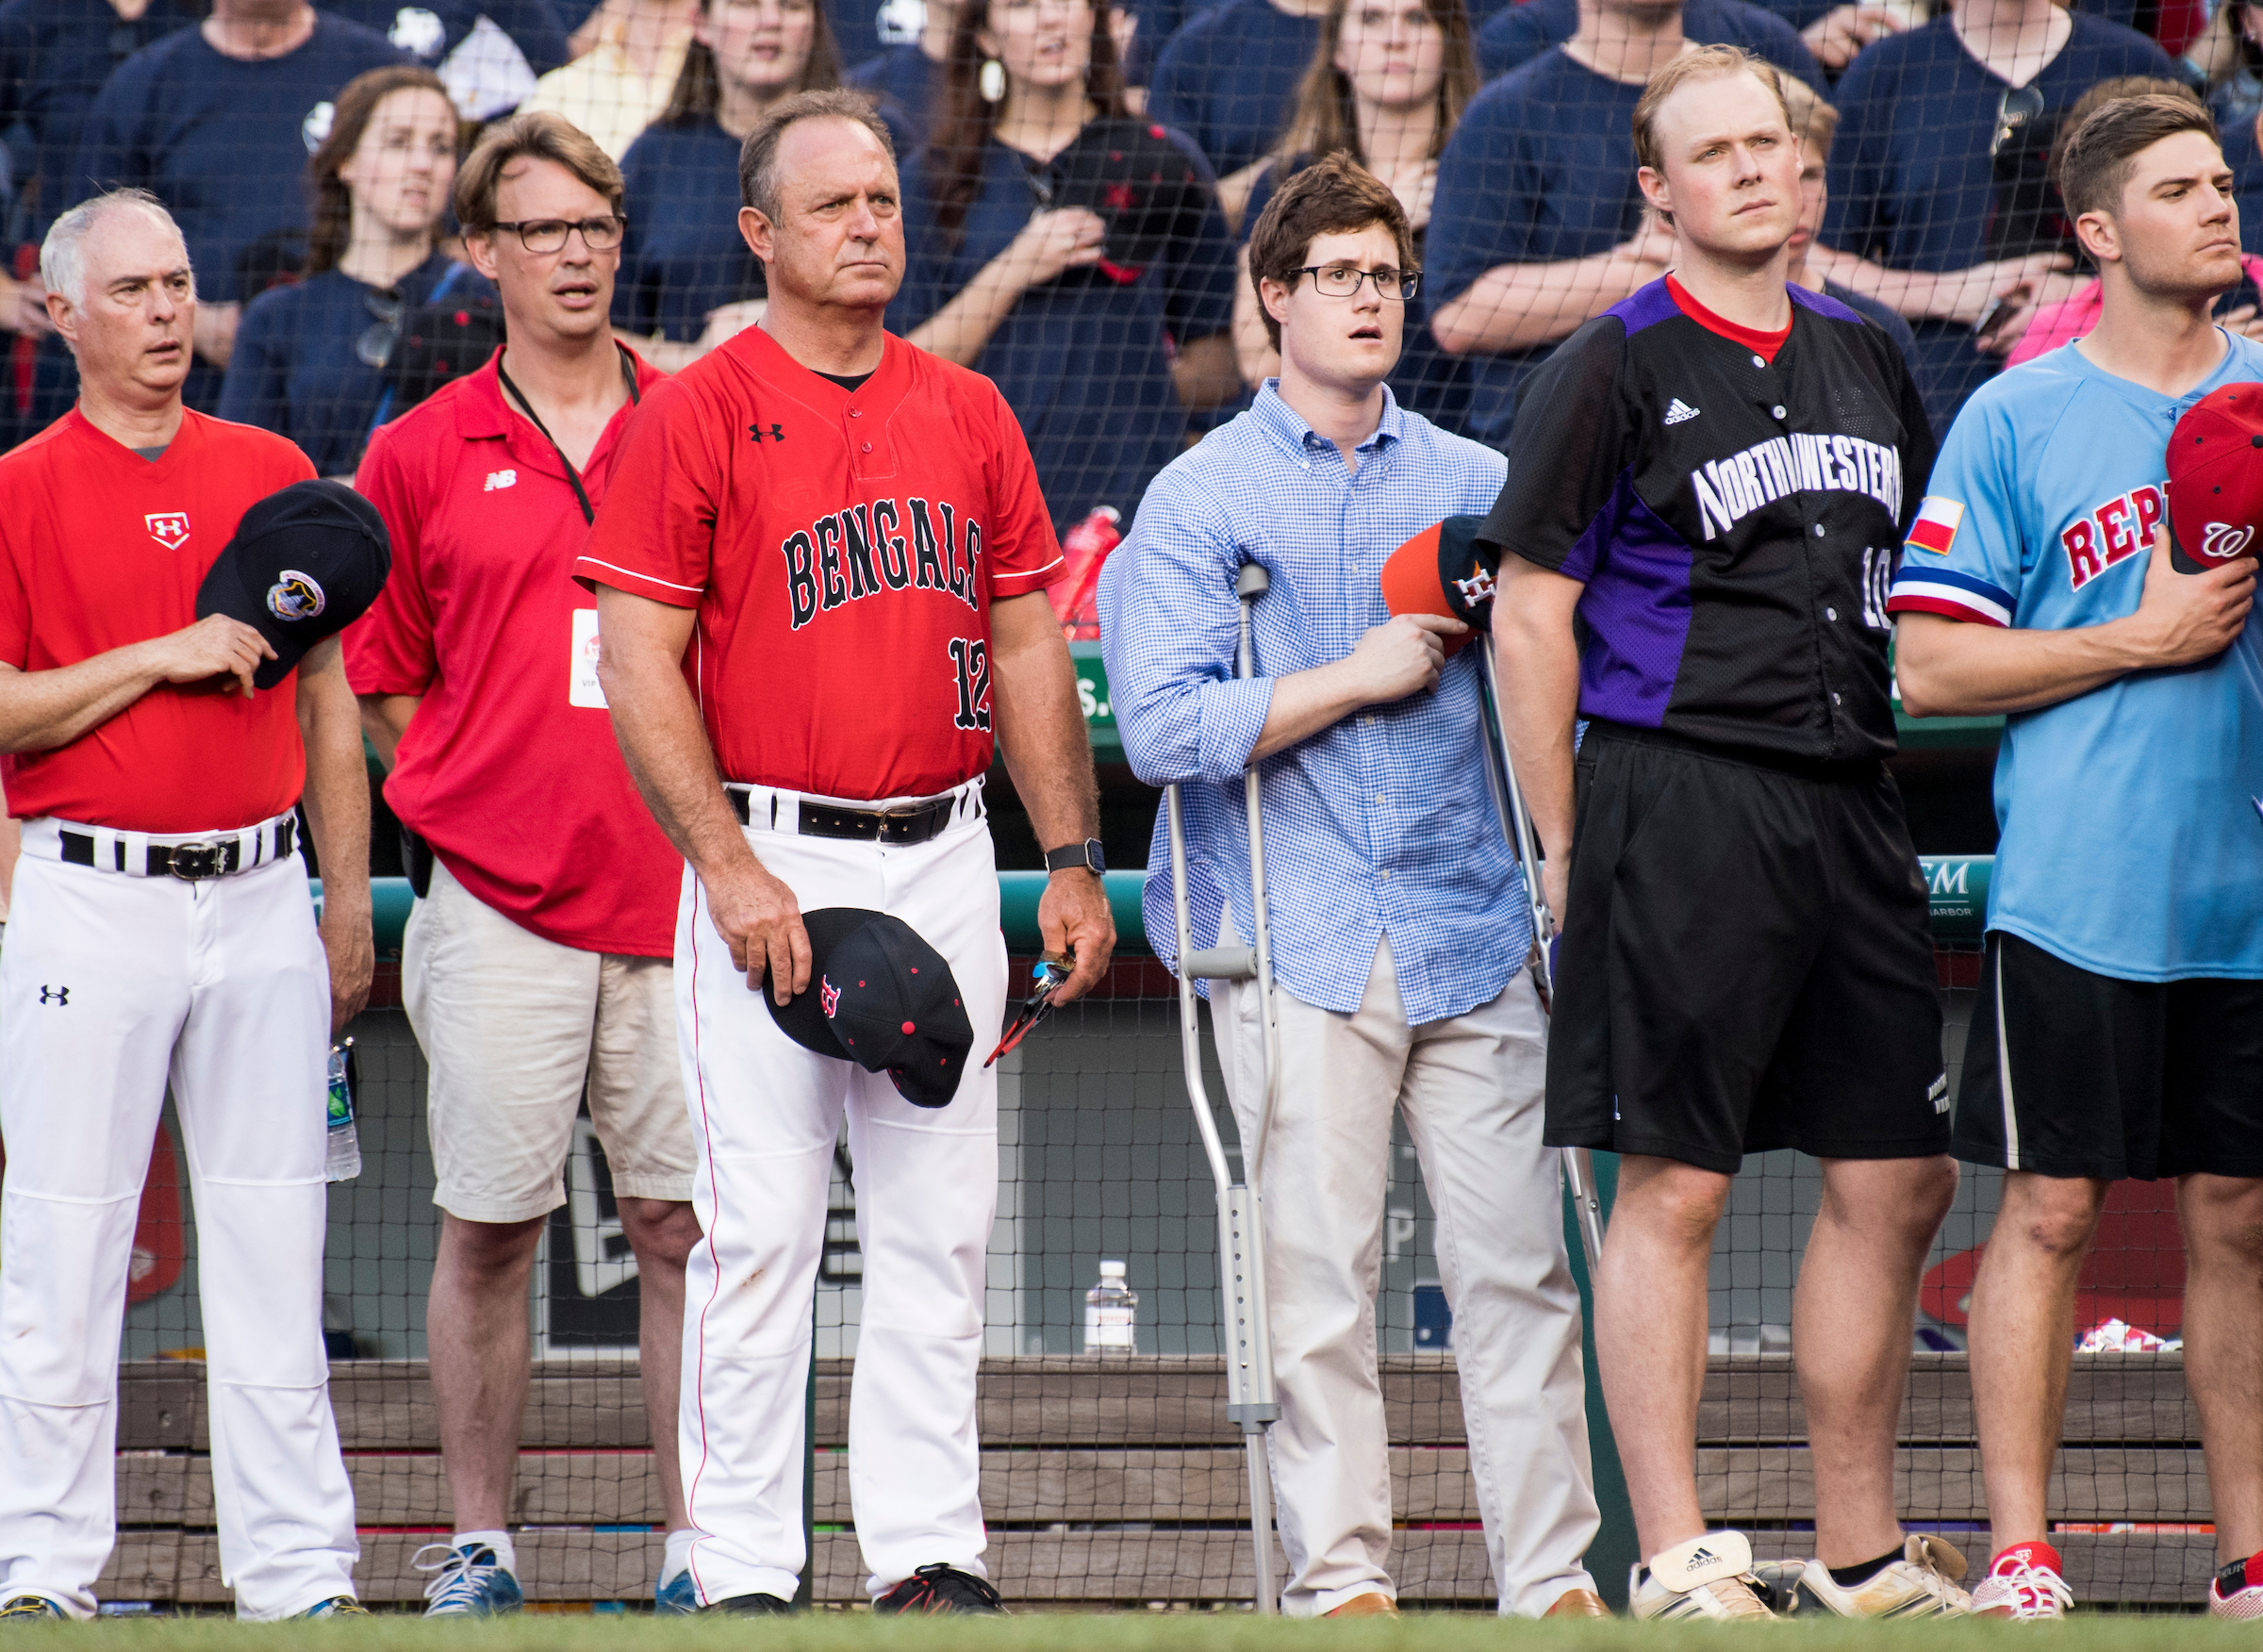 Congressional staffer Zach Barth, center, injured at the baseball practice shooting the day before, stands at the beginning of the game in Washington on Thursday. (Bill Clark/CQ Roll Call)